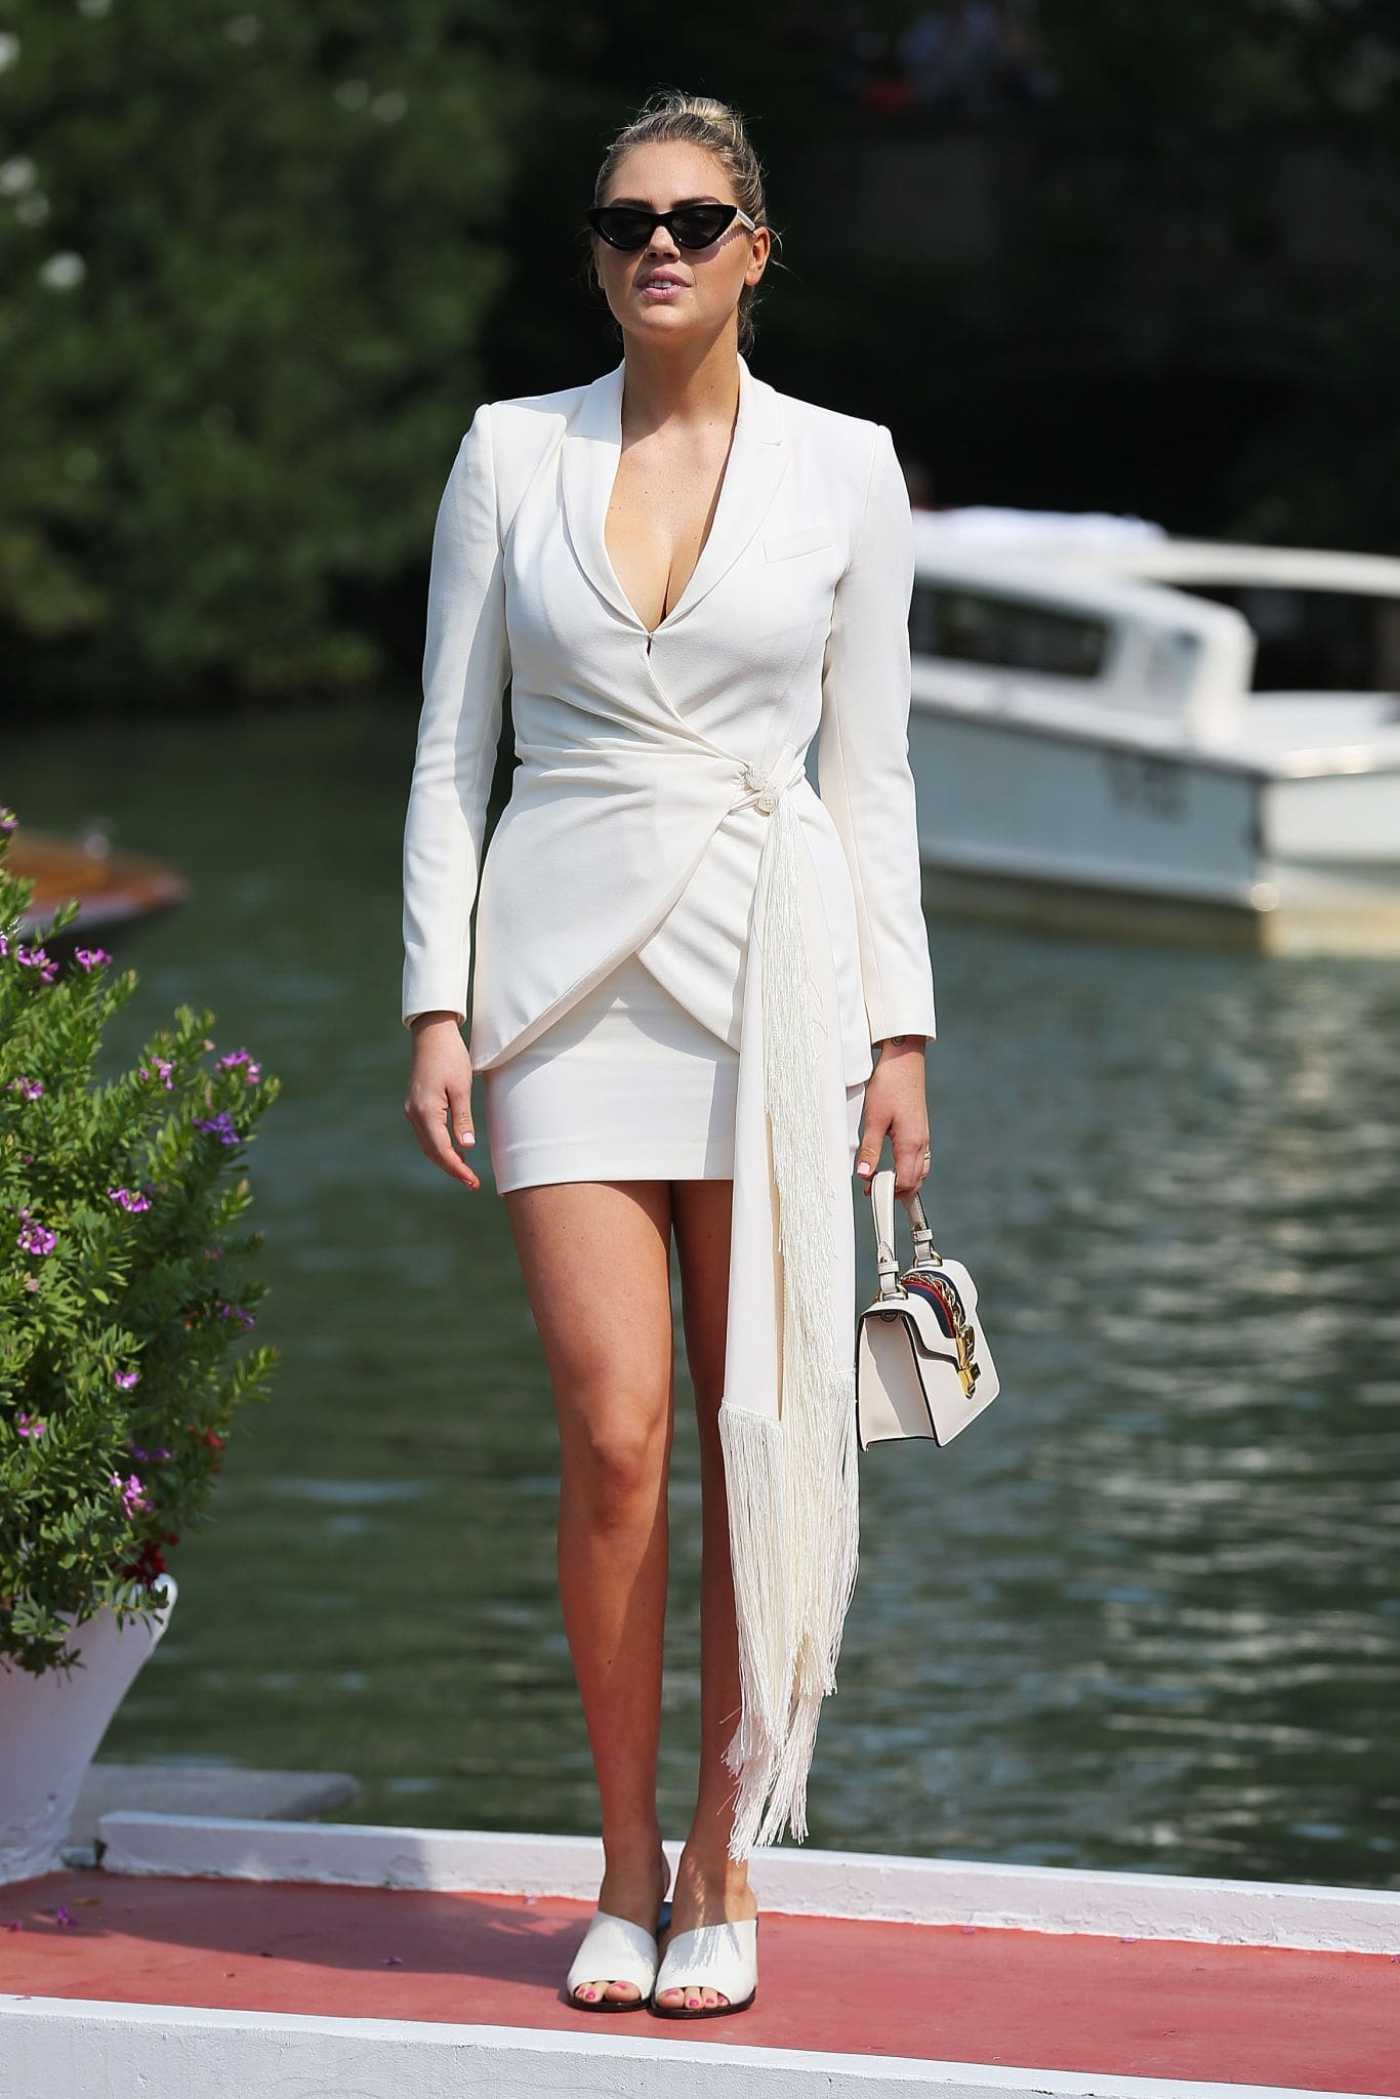 Kate Upton in a White Suit Arrives at the 76th Venice Film Festival in Venice 08/29/2019